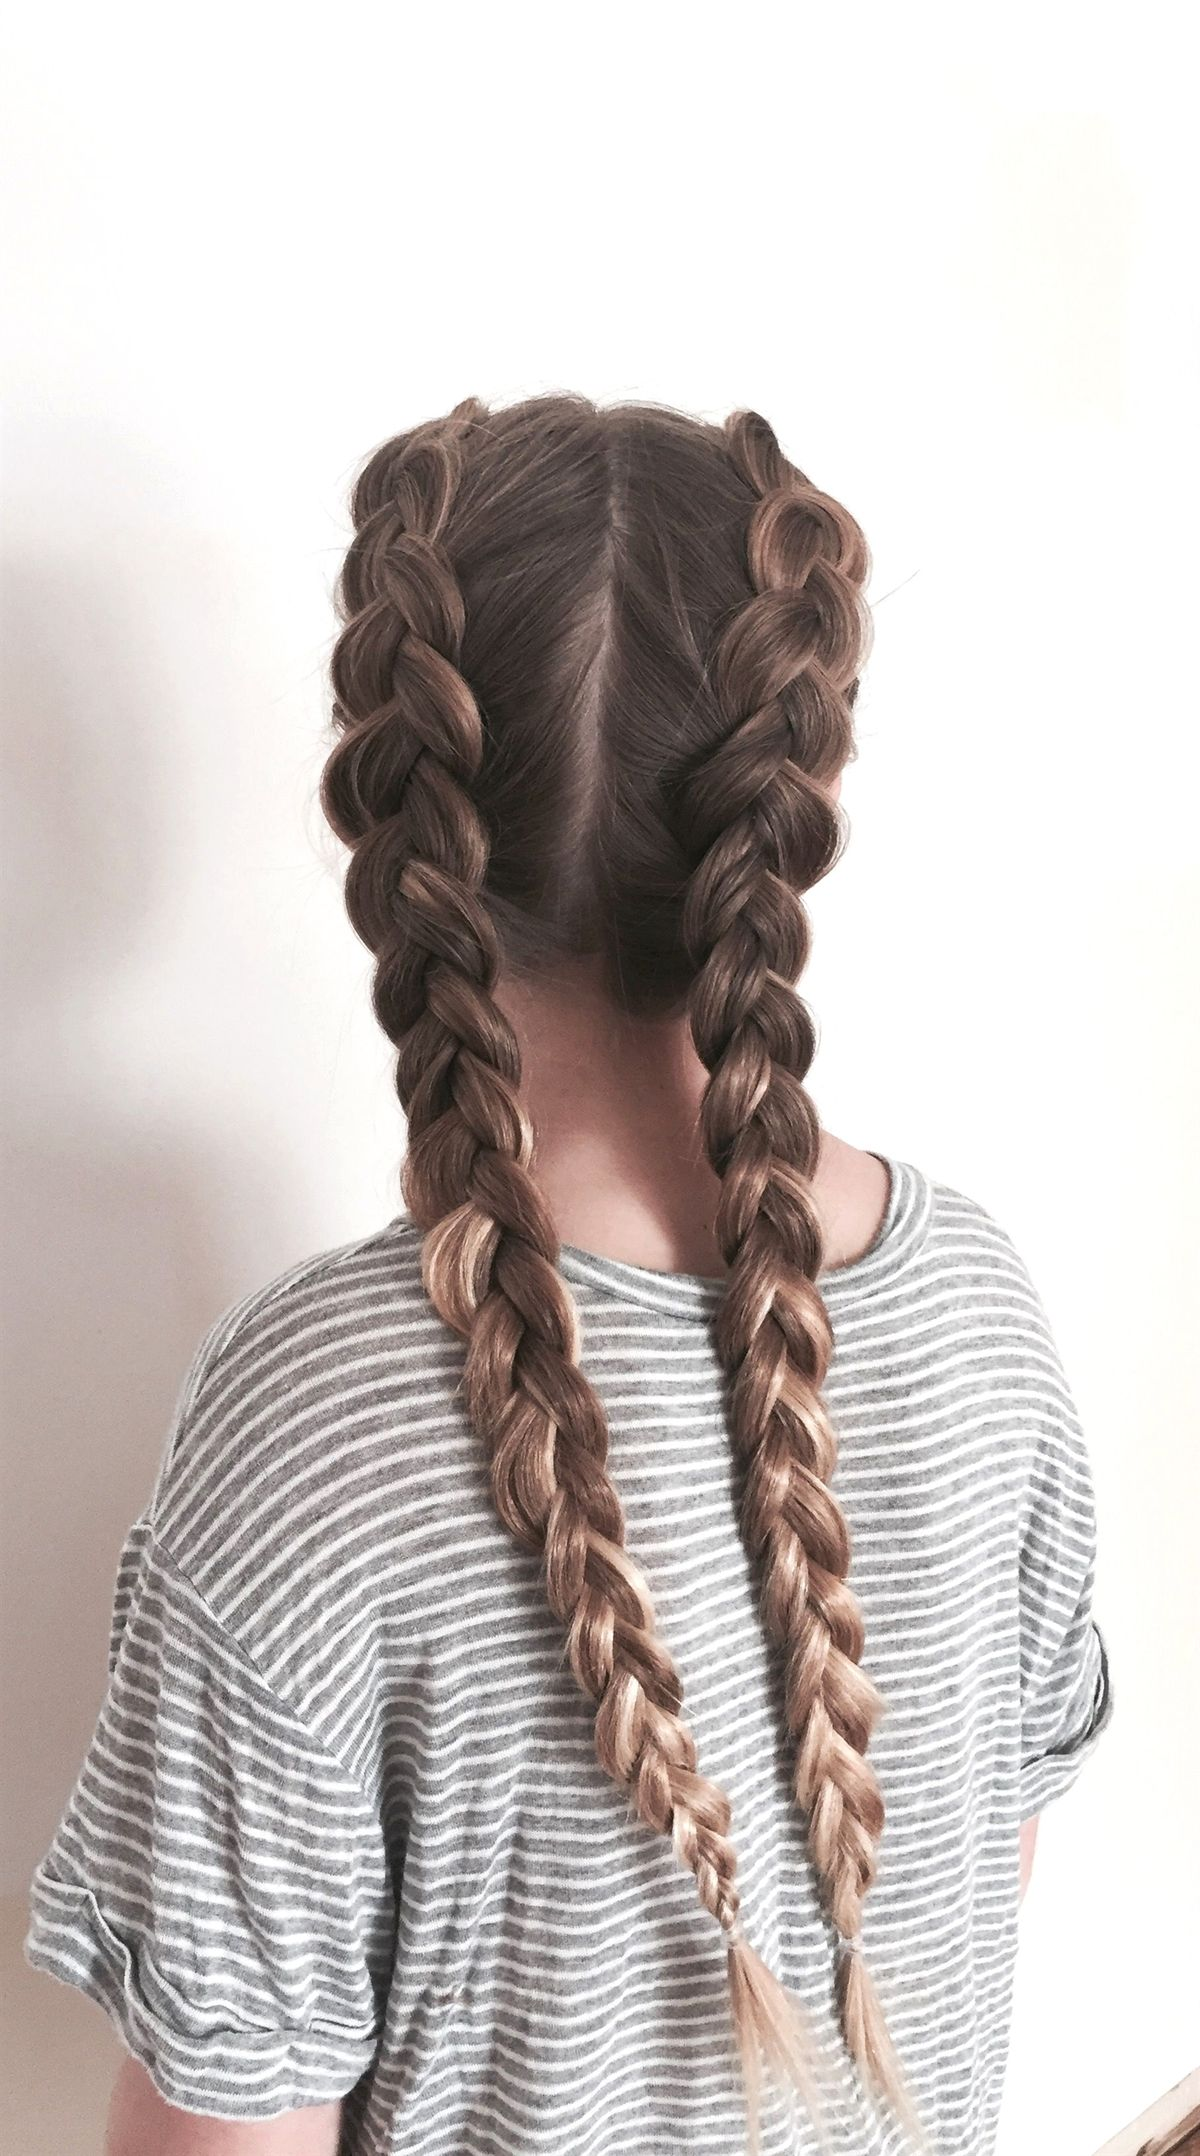 "Two Dutch braids <a class=""pintag"" href=""/explore/HairStylesForWomen/"" title=""#HairStylesForWomen explore Pinterest"">#HairStylesForWomen</a> <a class=""pintag"" href=""/explore/dutchBraids/"" title=""#dutchBraids explore Pinterest"">#dutchBraids</a><p><a href=""http://www.homeinteriordesign.org/2018/02/short-guide-to-interior-decoration.html"">Short guide to interior decoration</a></p>"